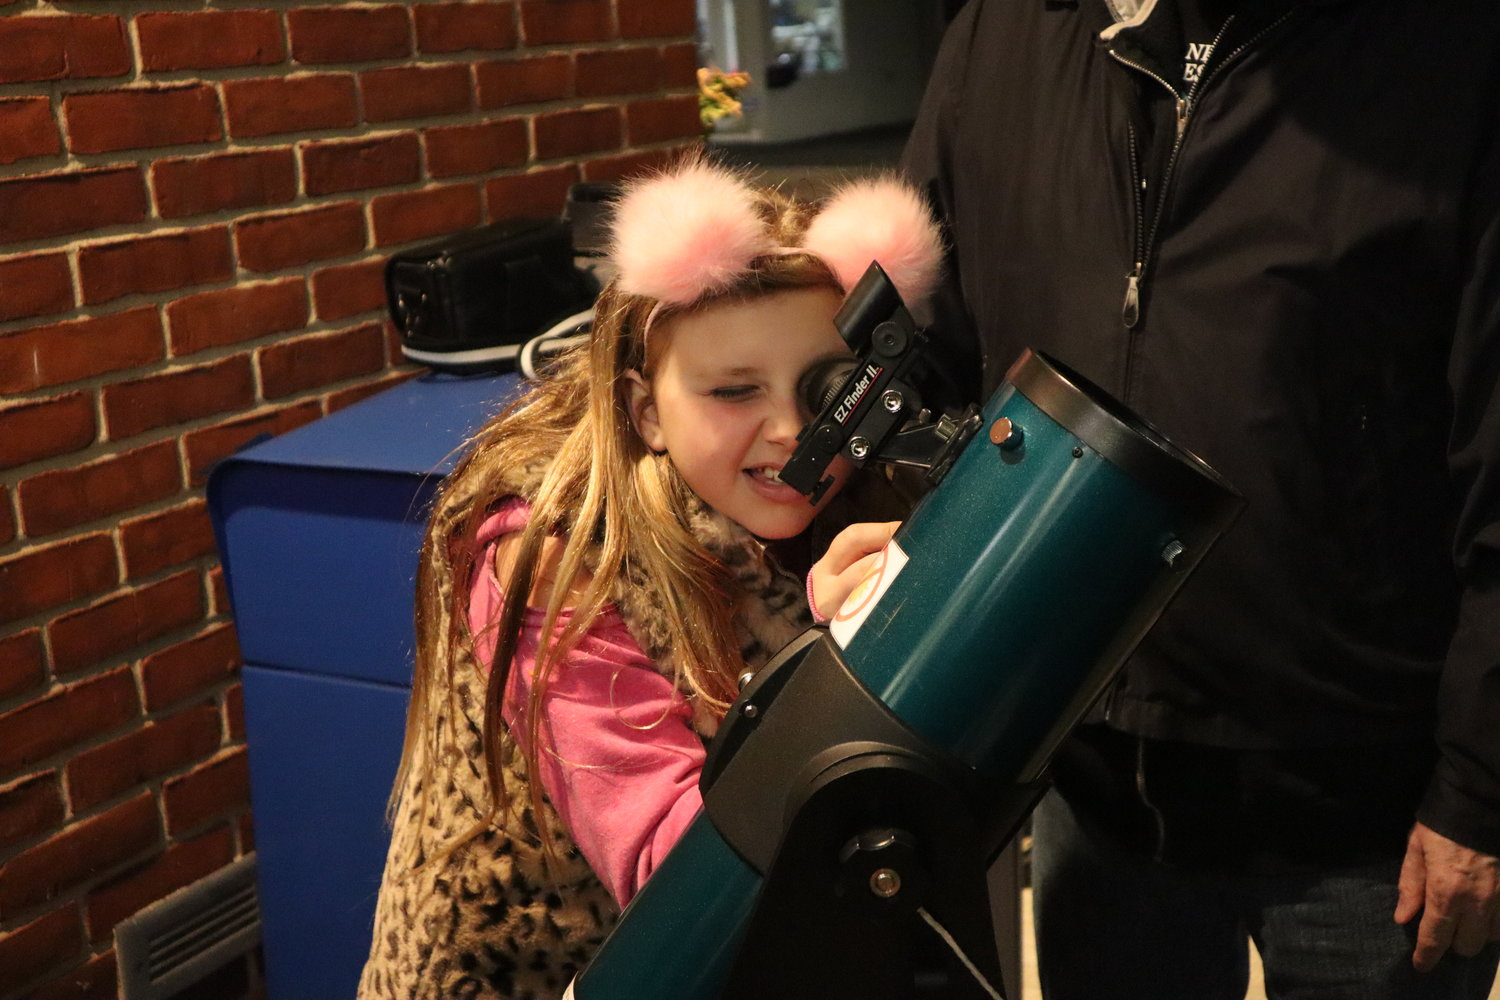 Tom Lynch's ongoing effort to introduce astronomy equipment to Long Island libraries recently brought him to the Bellmore Memorial Library. His goal is to inspire young minds like Taylor Shea's, who gazed at the moon through the library's new telescope on April 15.